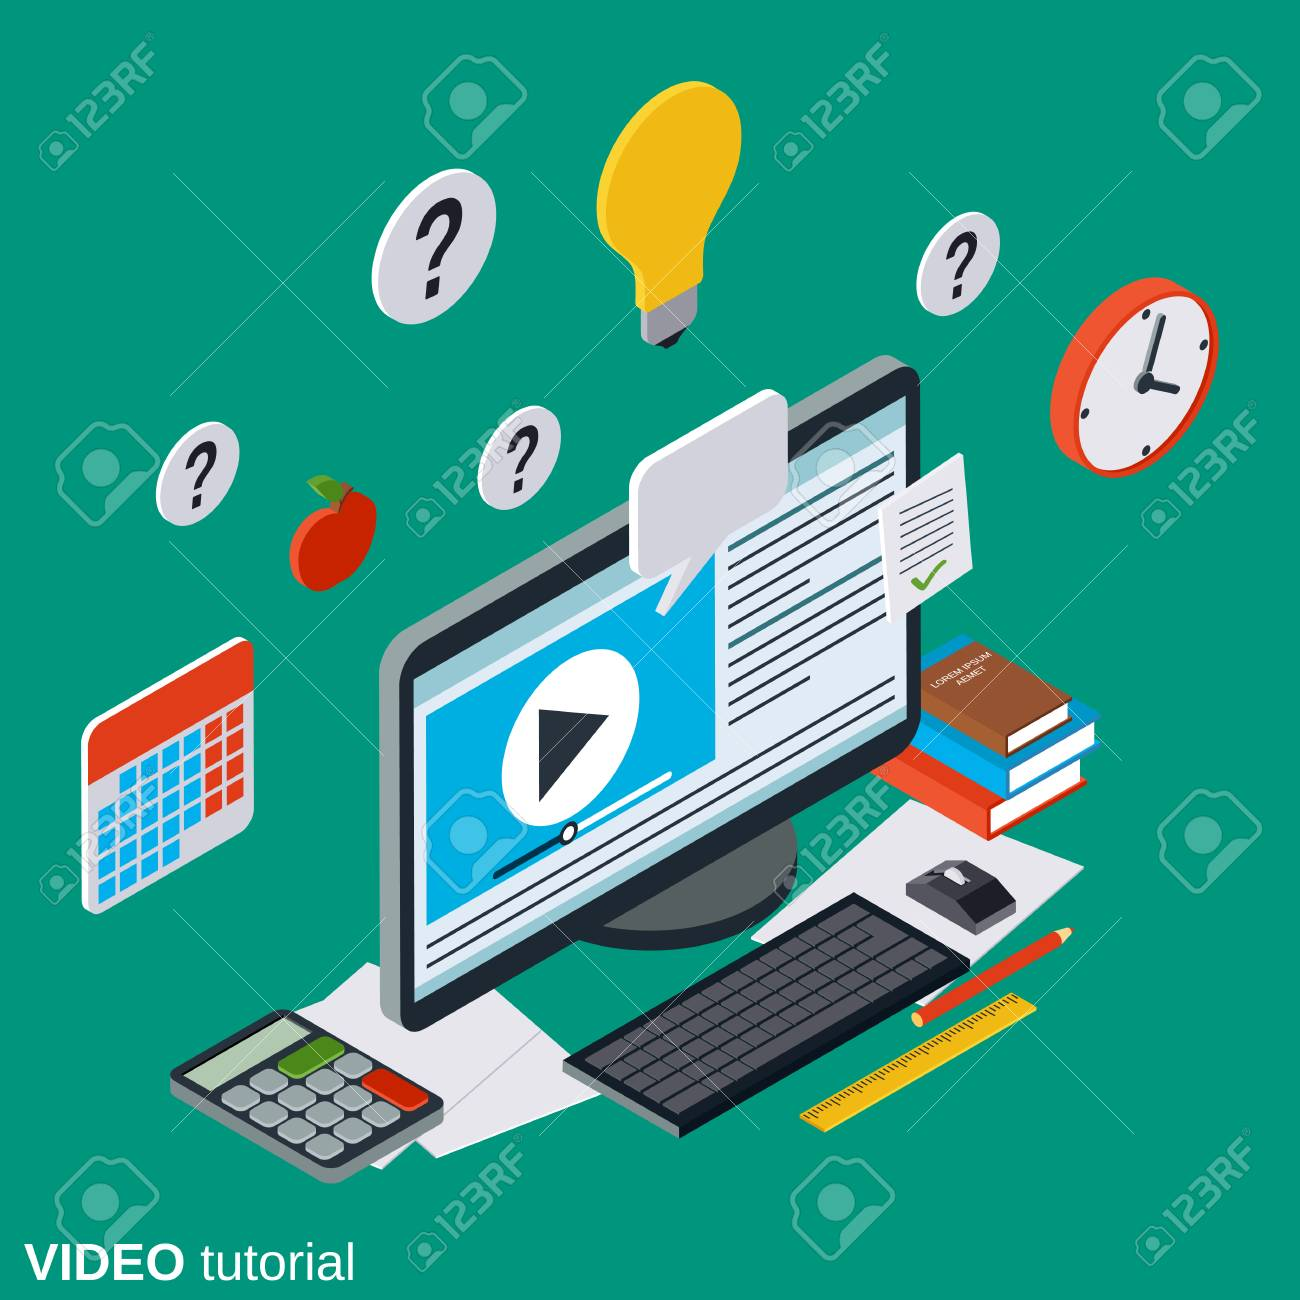 video tutorial e learning online education user guide flat rh 123rf com Photoshop CS5 Video-Tutorials Card Making Video-Tutorials